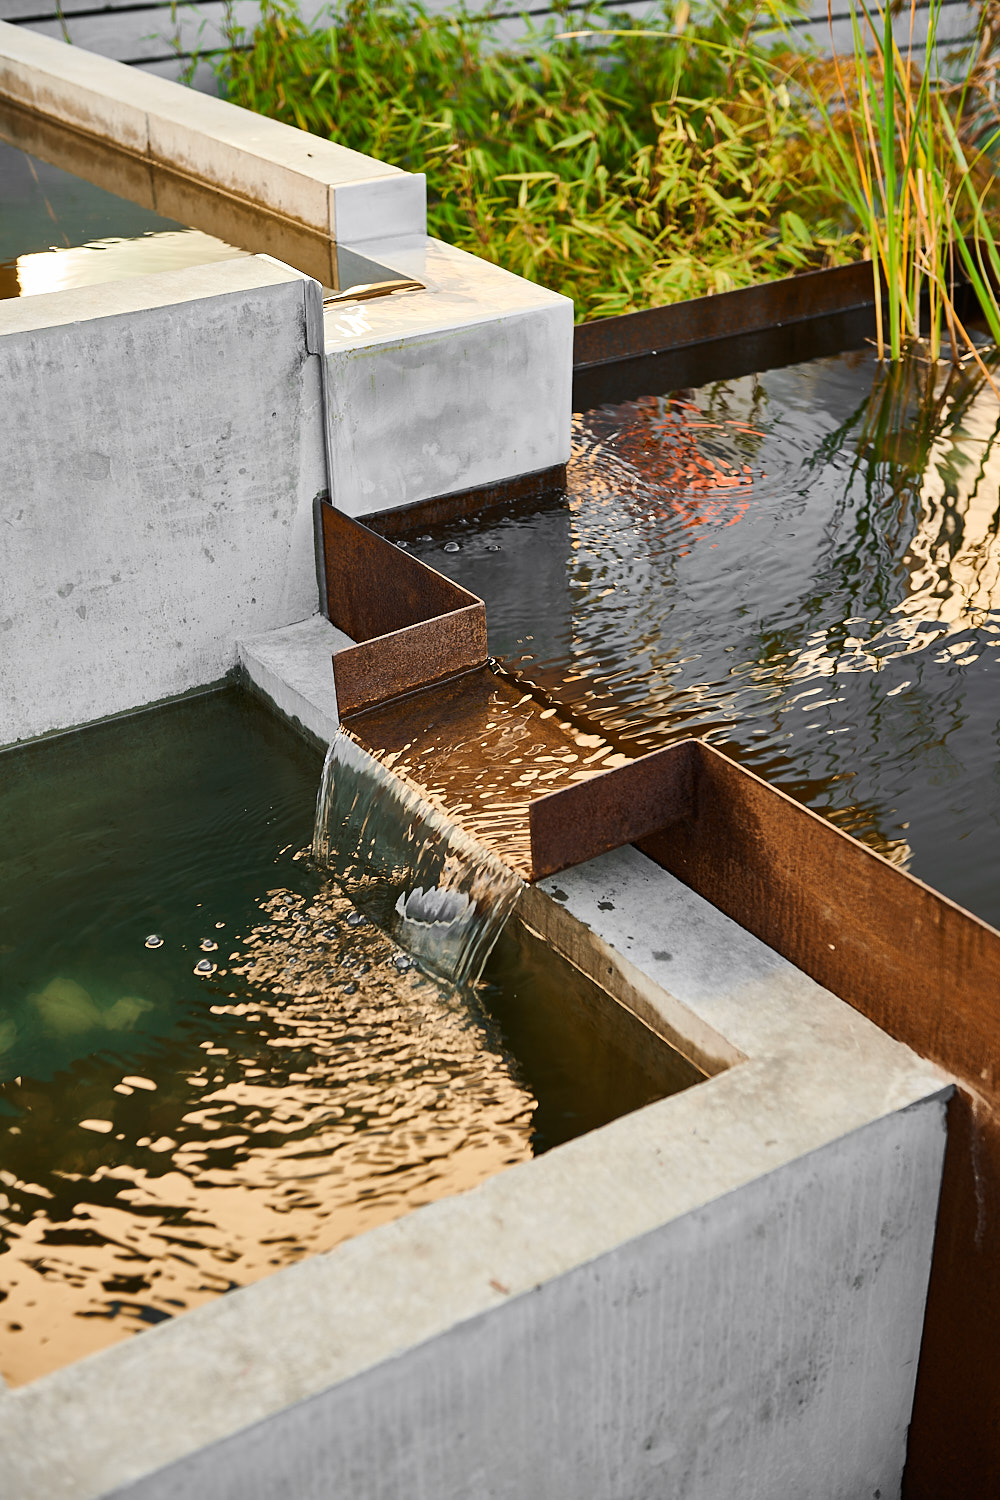 Modern Water feature from Corten steel and cast in place architectural concrete.